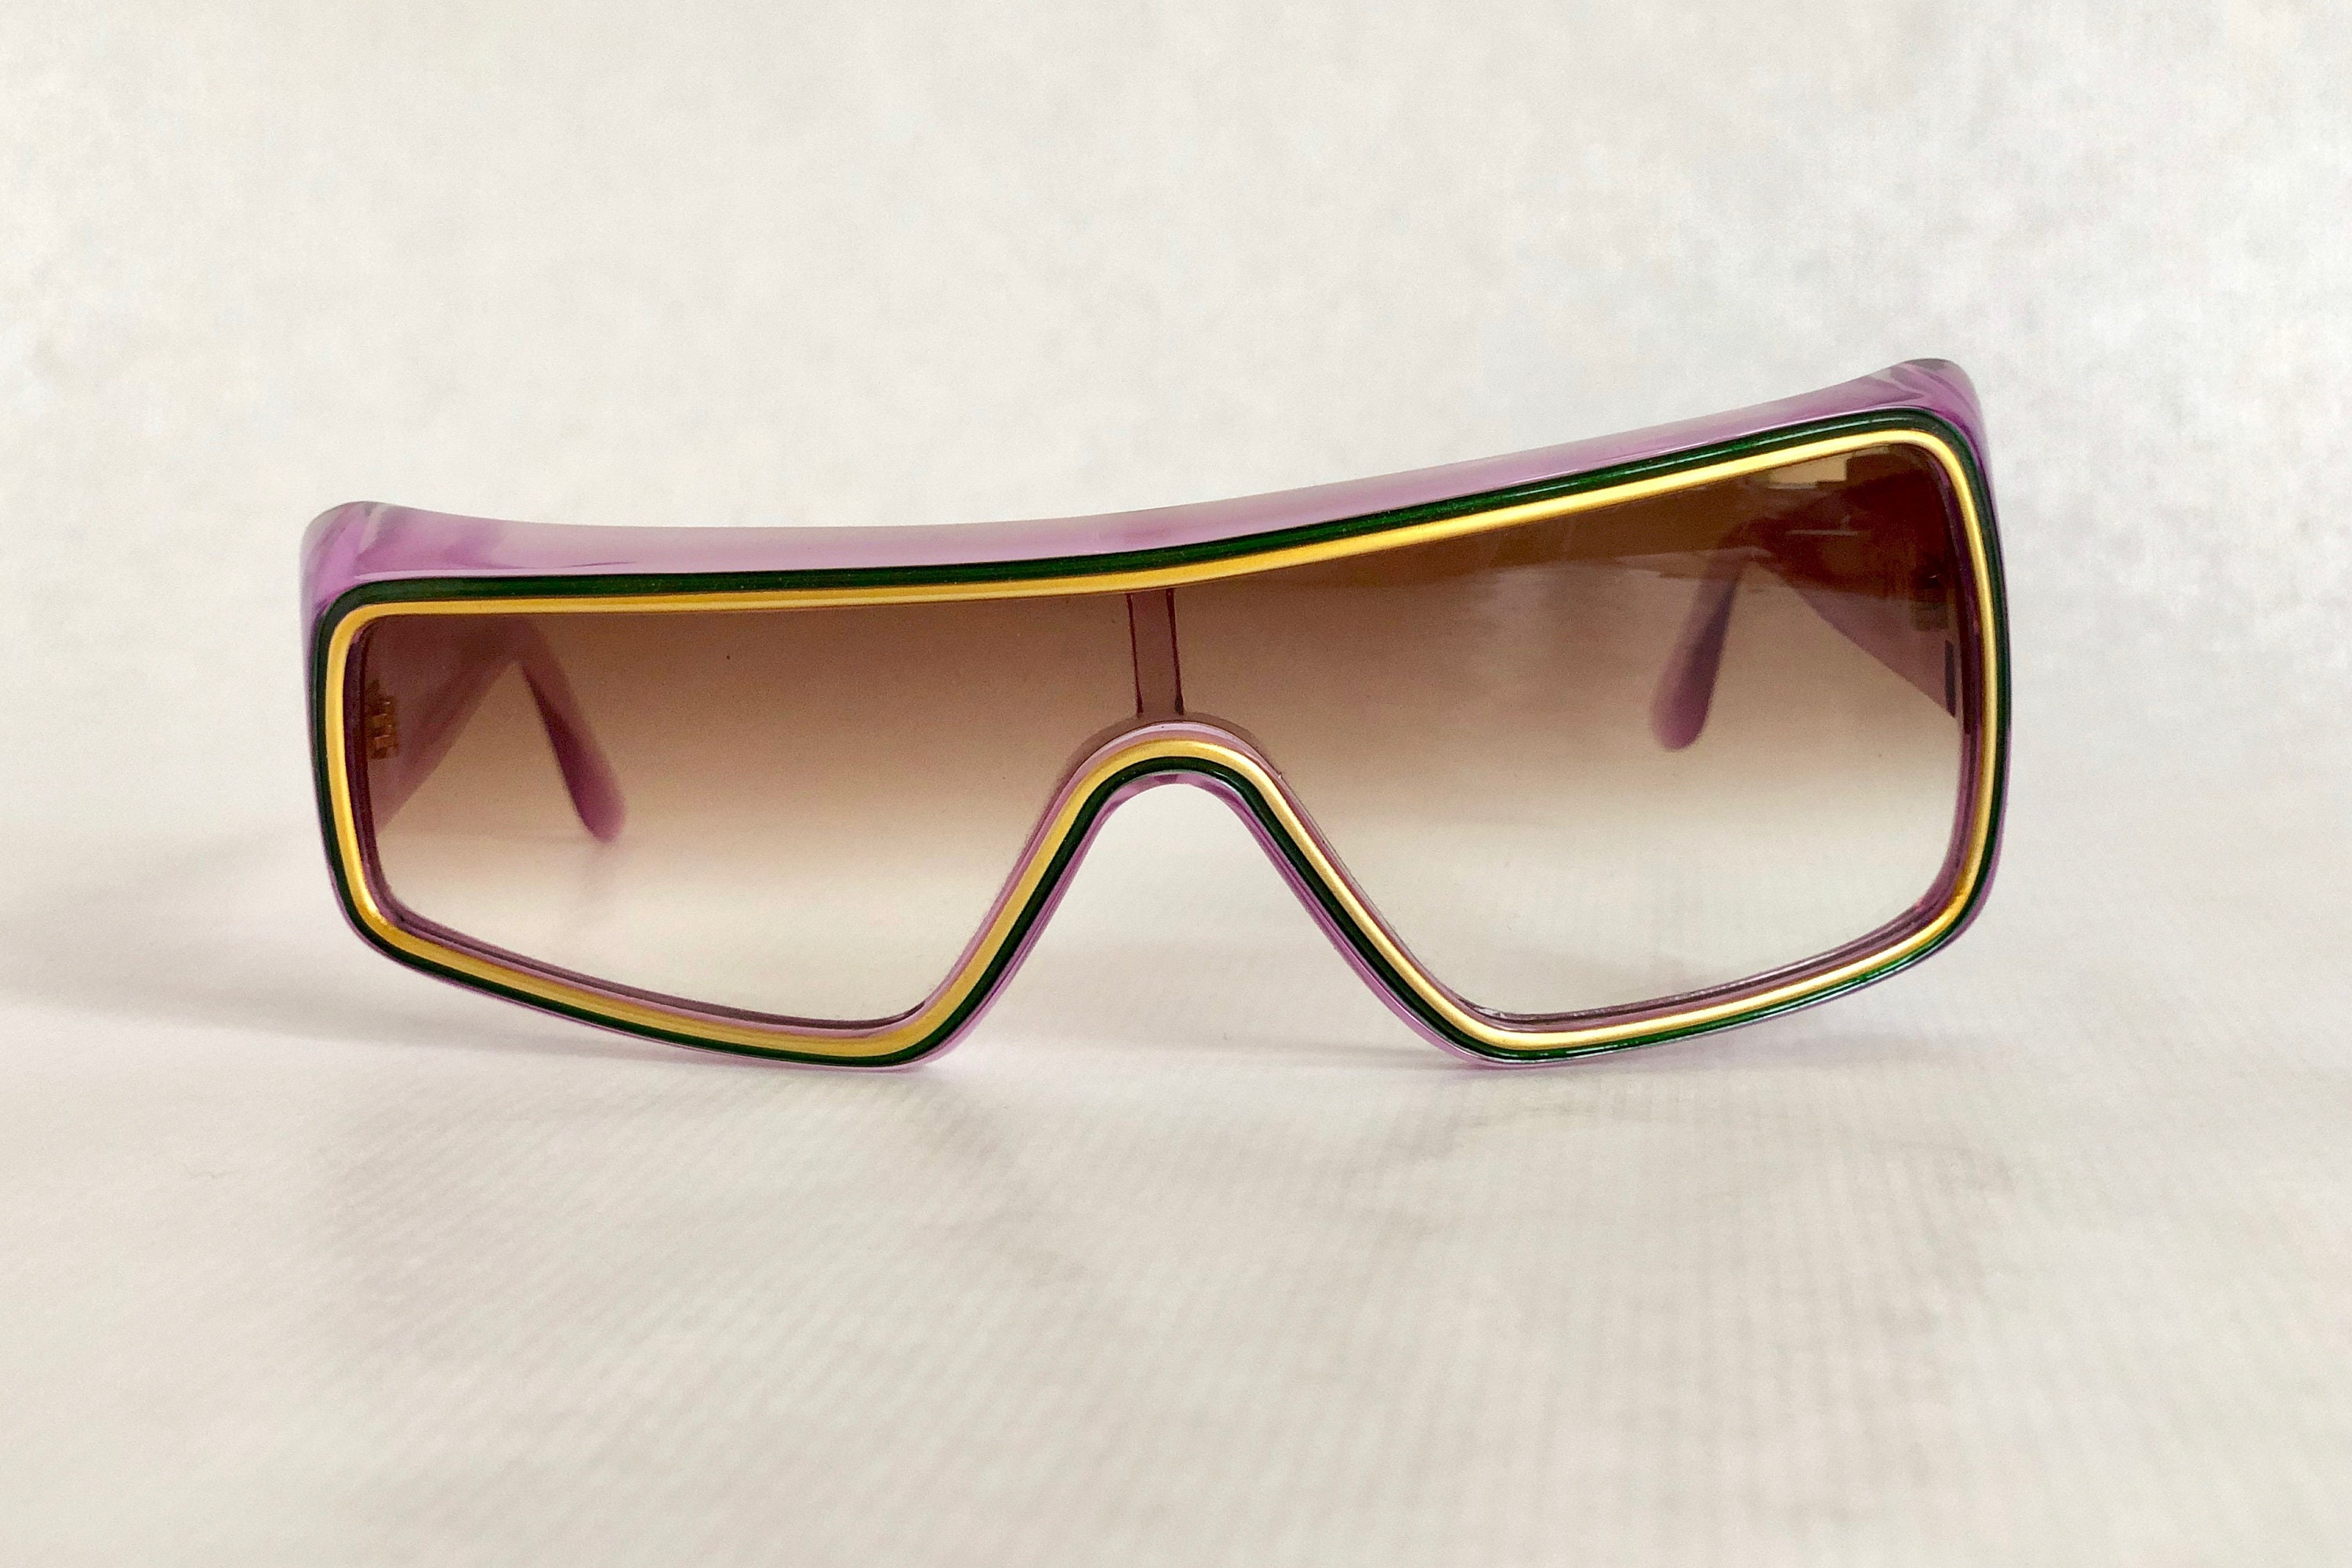 6bd6cb3de9c ... Vintage Sunglasses New Old Stock Made in Italy. gallery photo ...